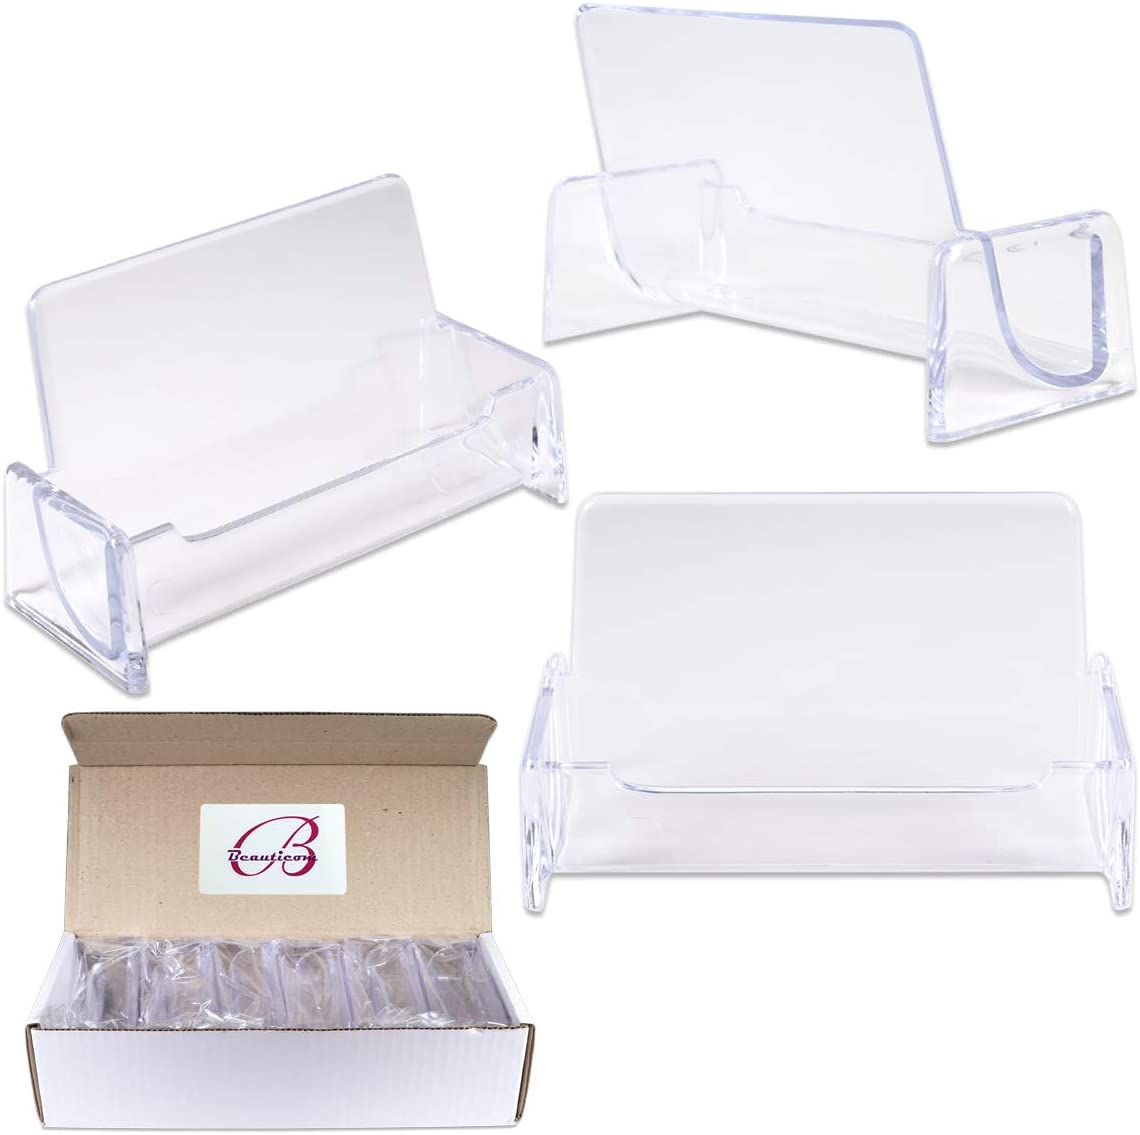 Beauticom 12 Pieces - Clear Plastic Business Card Holder Display Desktop Countertop (Style # 3)